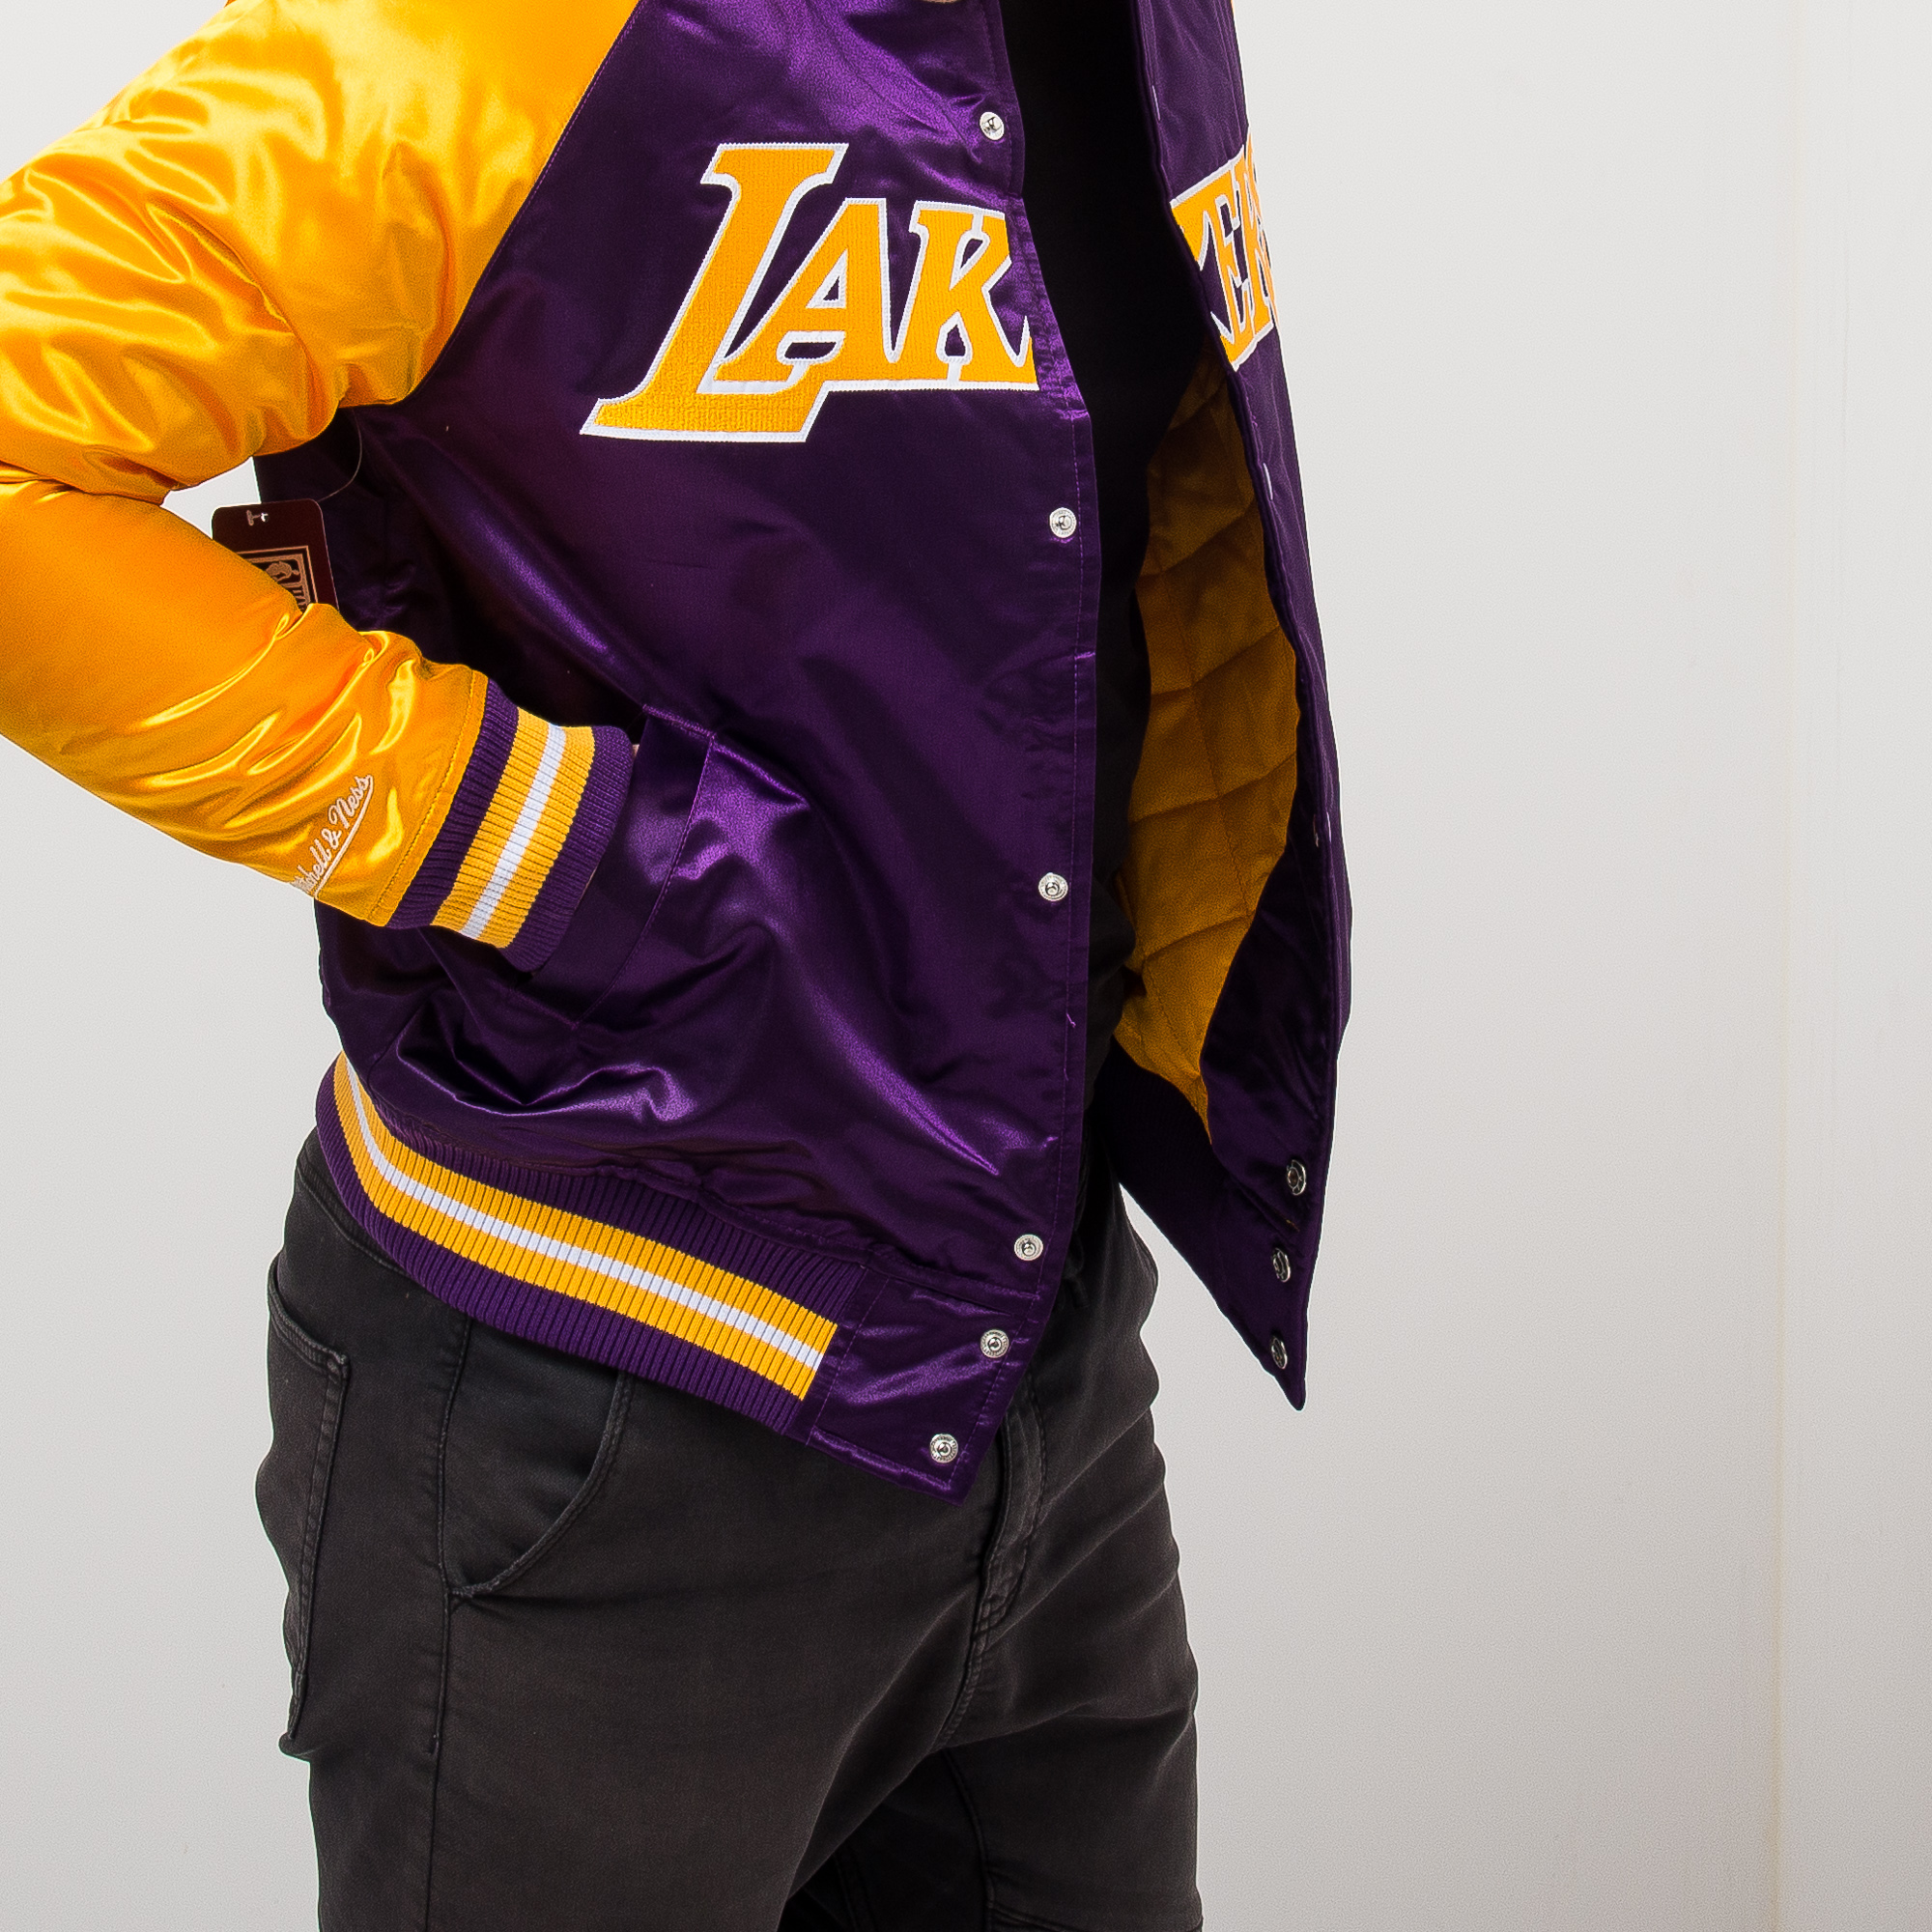 quality design c87cc 5ef1d Mitchell & Ness NBA Los Angeles Lakers Tough Season Satin ...